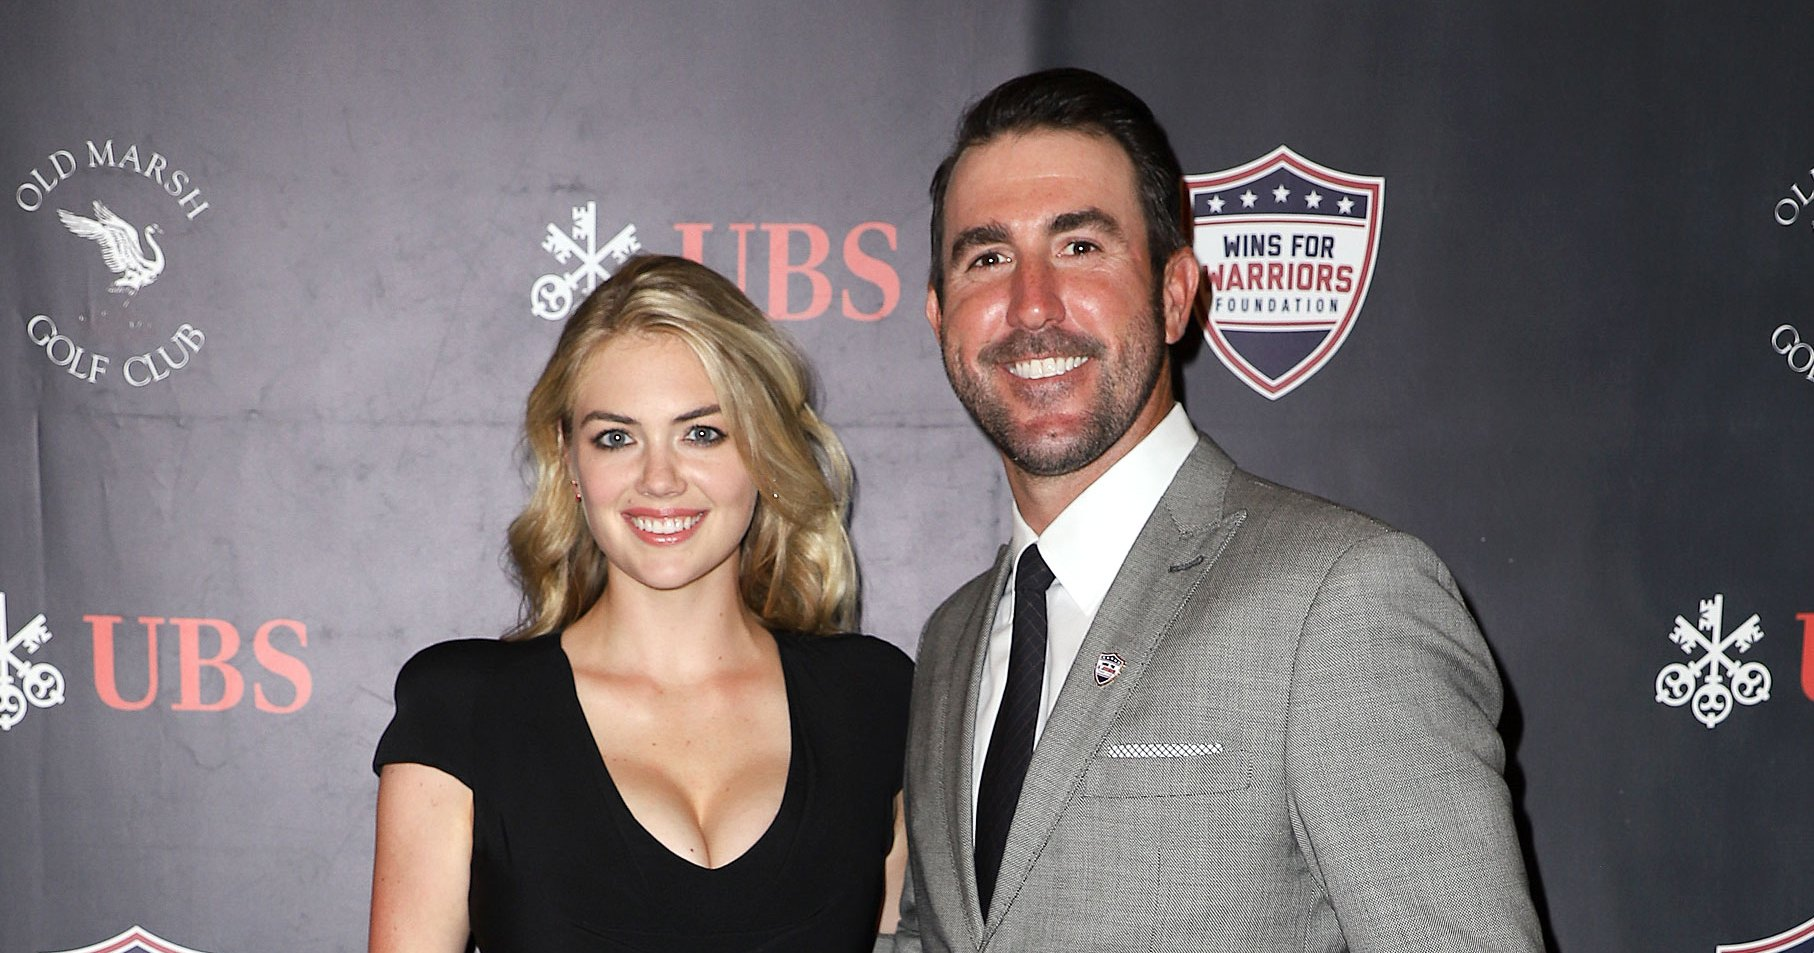 Kate Upton Reveals Whether She'll Have More Kids With Justin Verlander